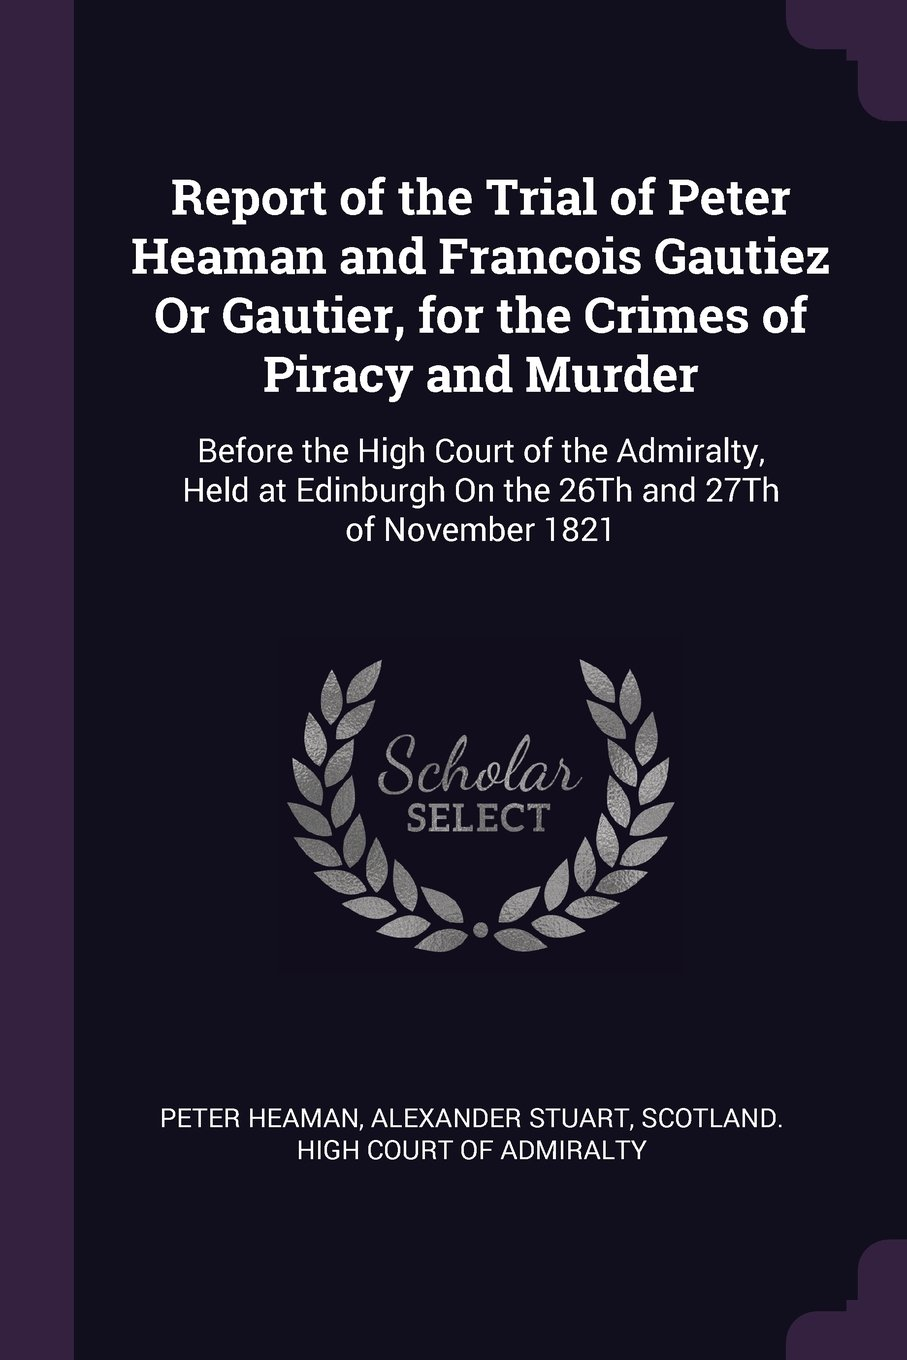 Download Report of the Trial of Peter Heaman and Francois Gautiez or Gautier, for the Crimes of Piracy and Murder: Before the High Court of the Admiralty, Held ... on the 26th and 27th of November 1821 pdf